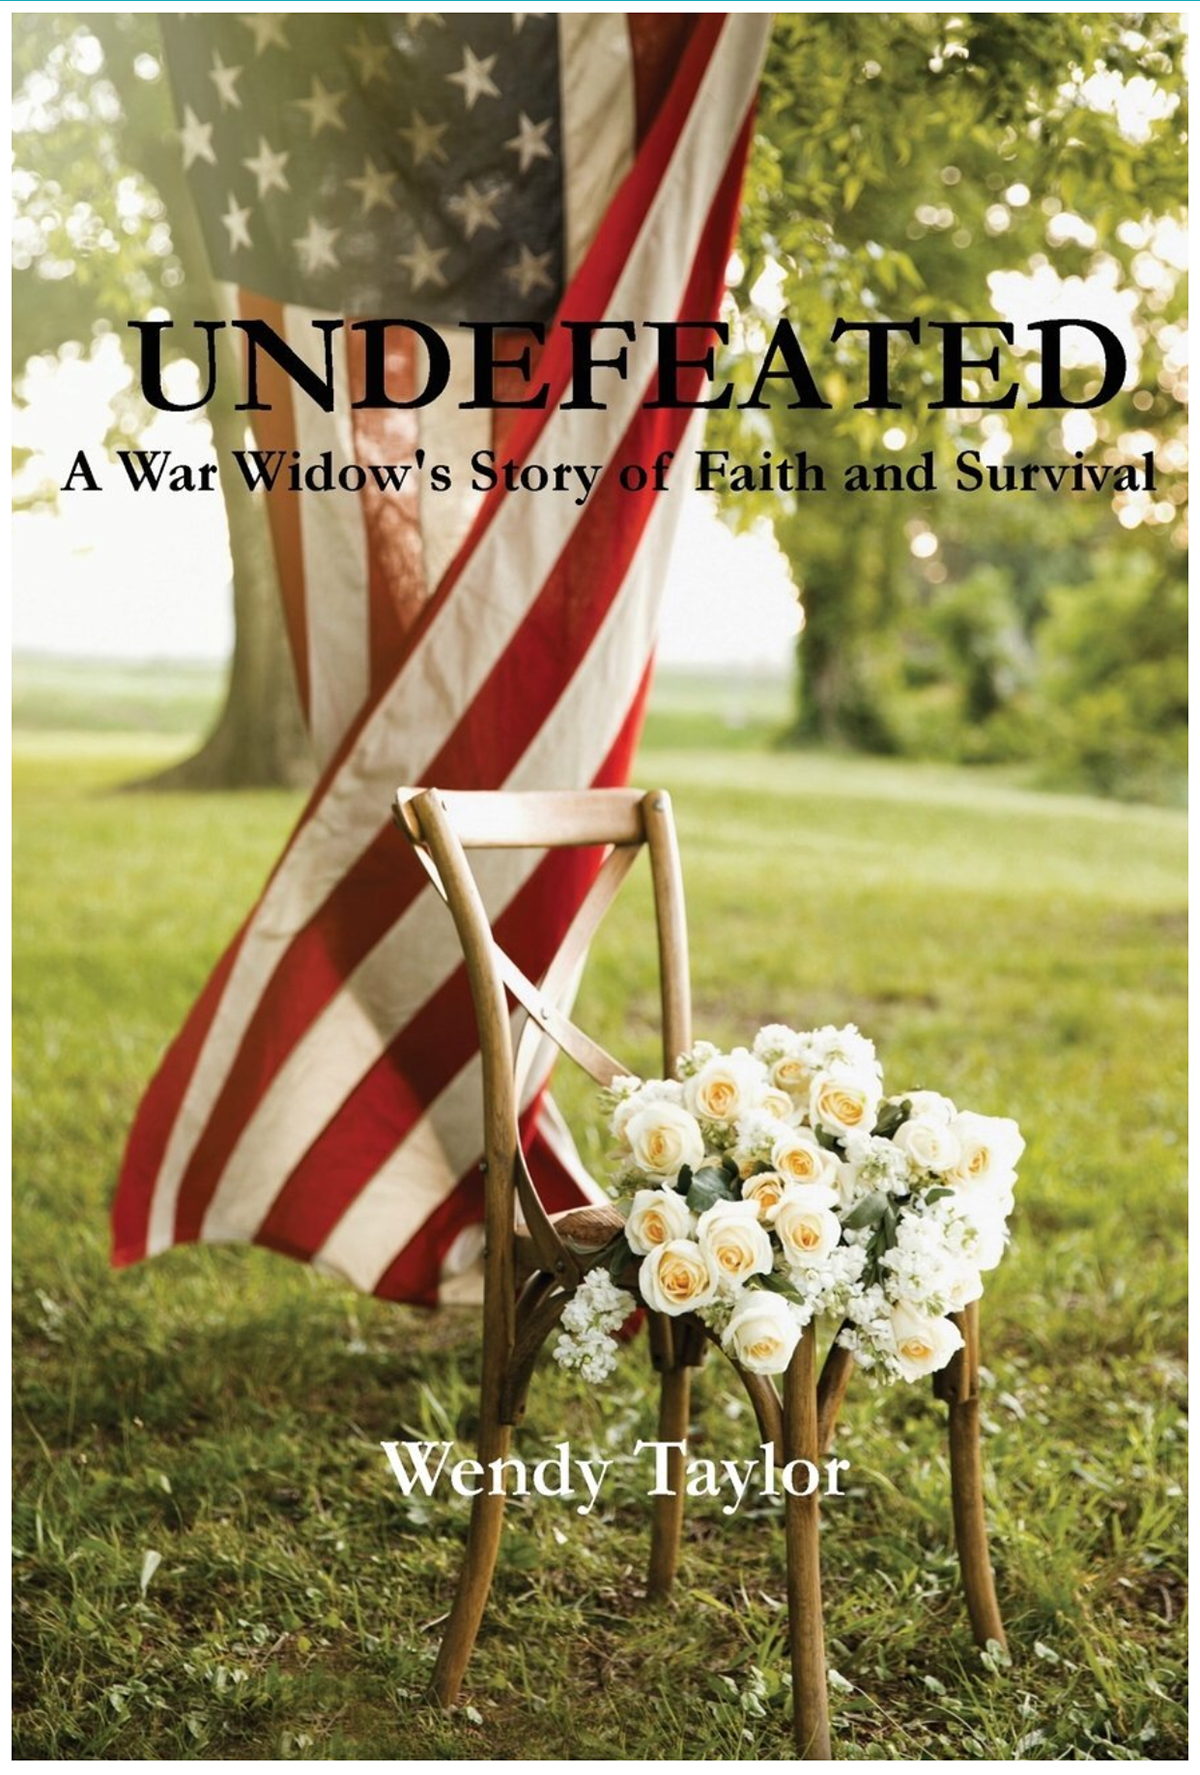 Undefeated a war widow's story of faith and survival by Wendy Taylor